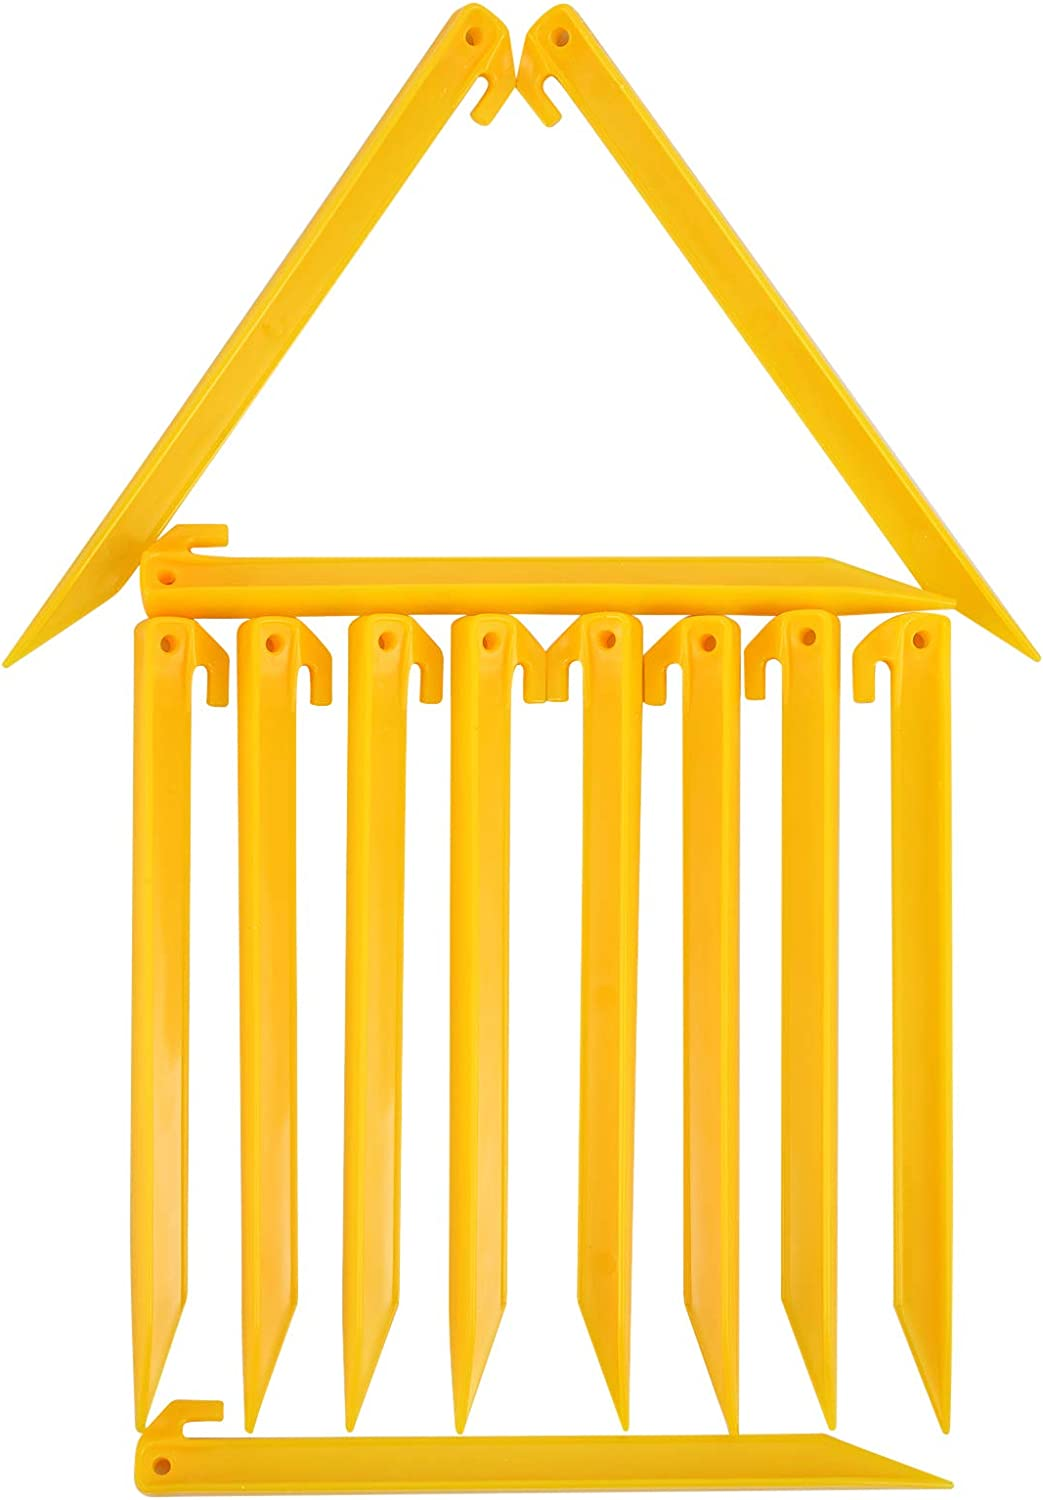 MUDOR 12 Inch Plastic Tent Stakes -12 pcs Heavy Duty and Durable Tent Pegs Spike Hook for Campings Outdoor Sand Beach, Sturdy Canopy Stakes Accessories, Garden Lawn Stakes